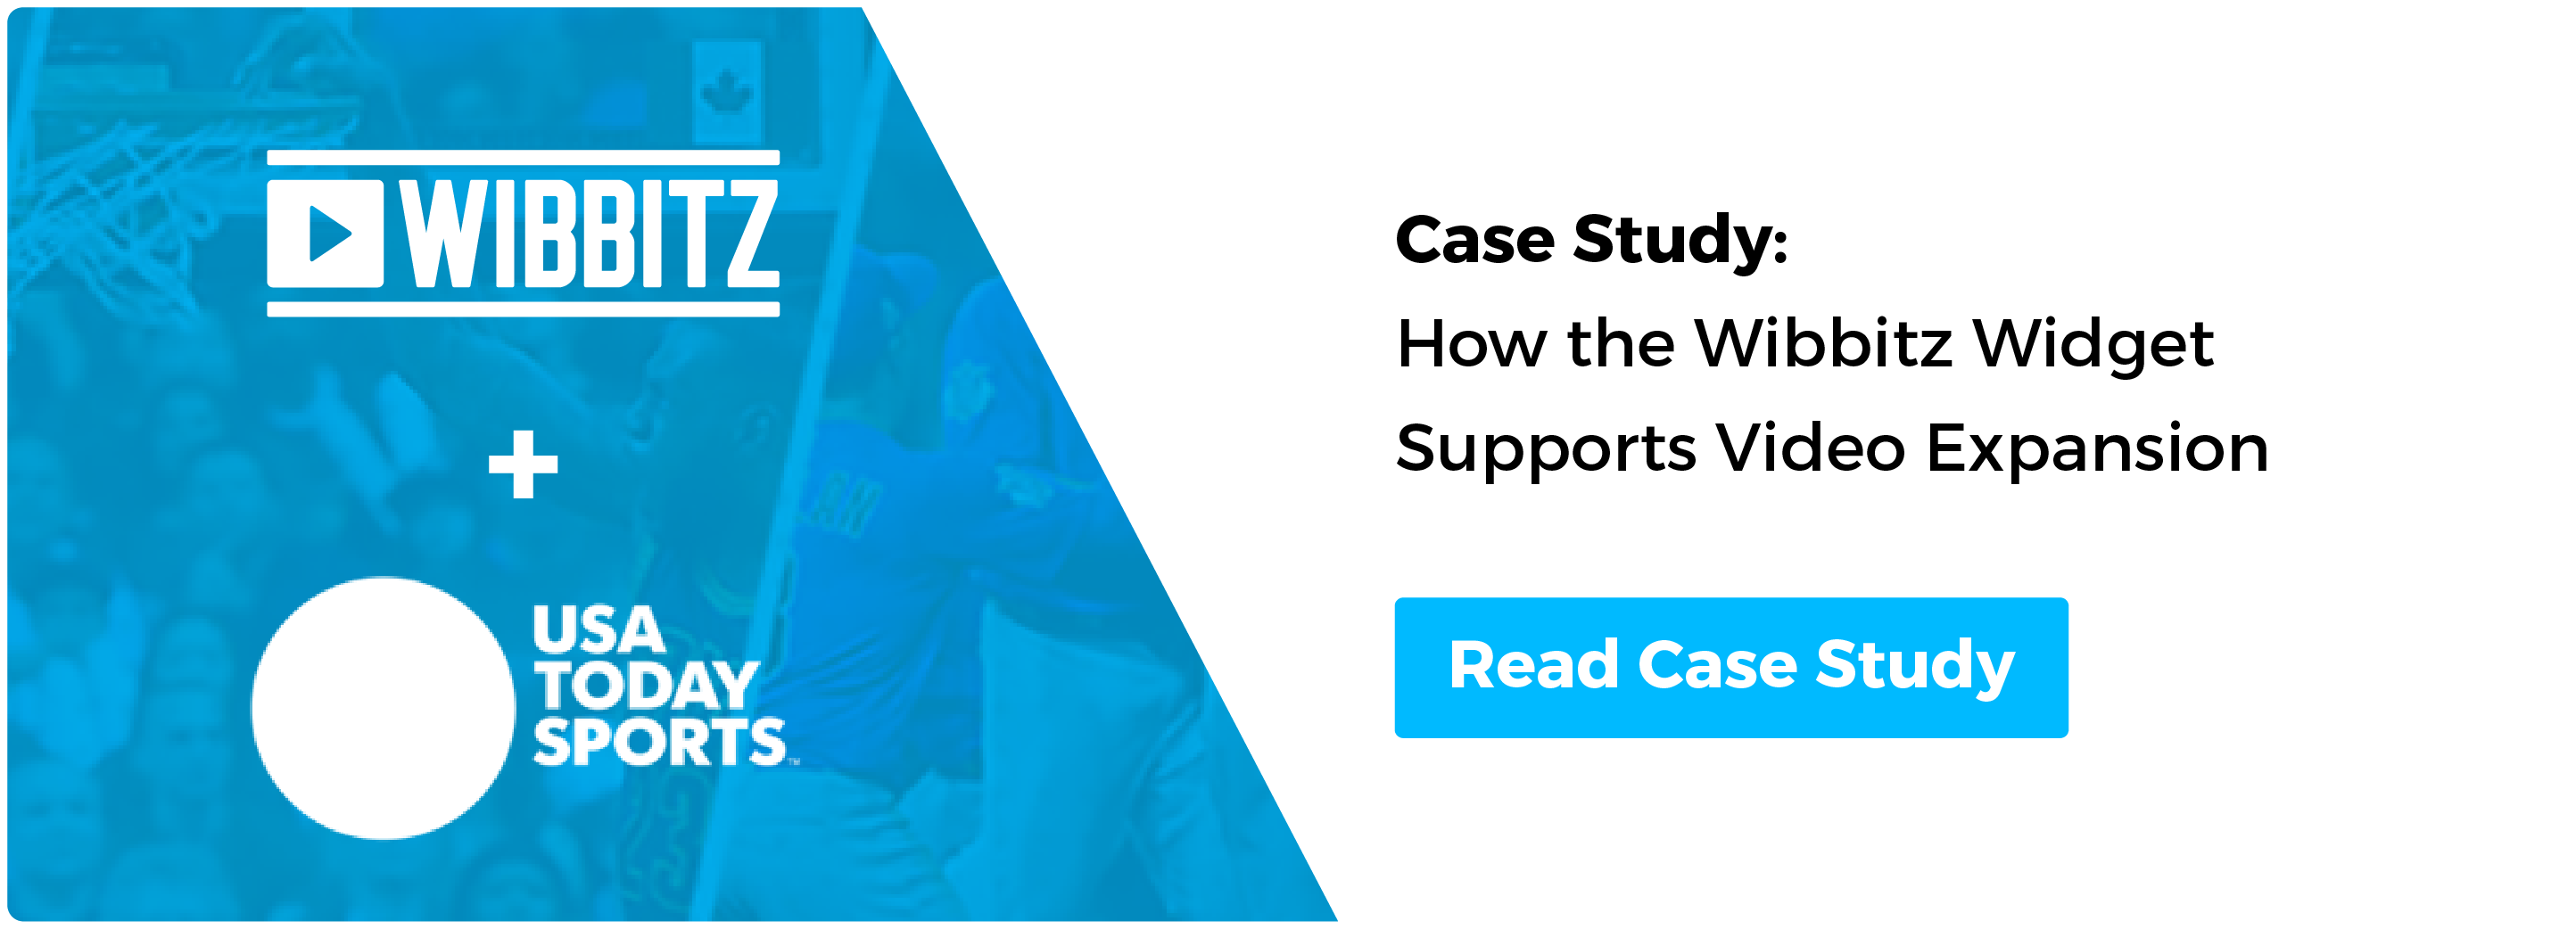 CASE STUDY: How the Wibbitz Widget Supports USA TODAY Sports Media Group's Video Expansion